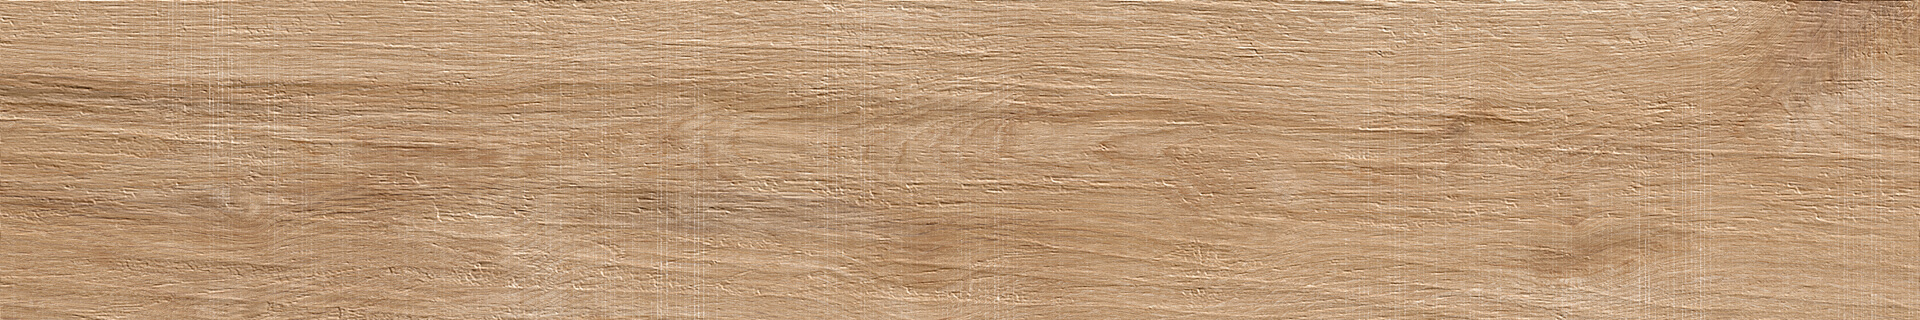 Artwood Natural 120x20